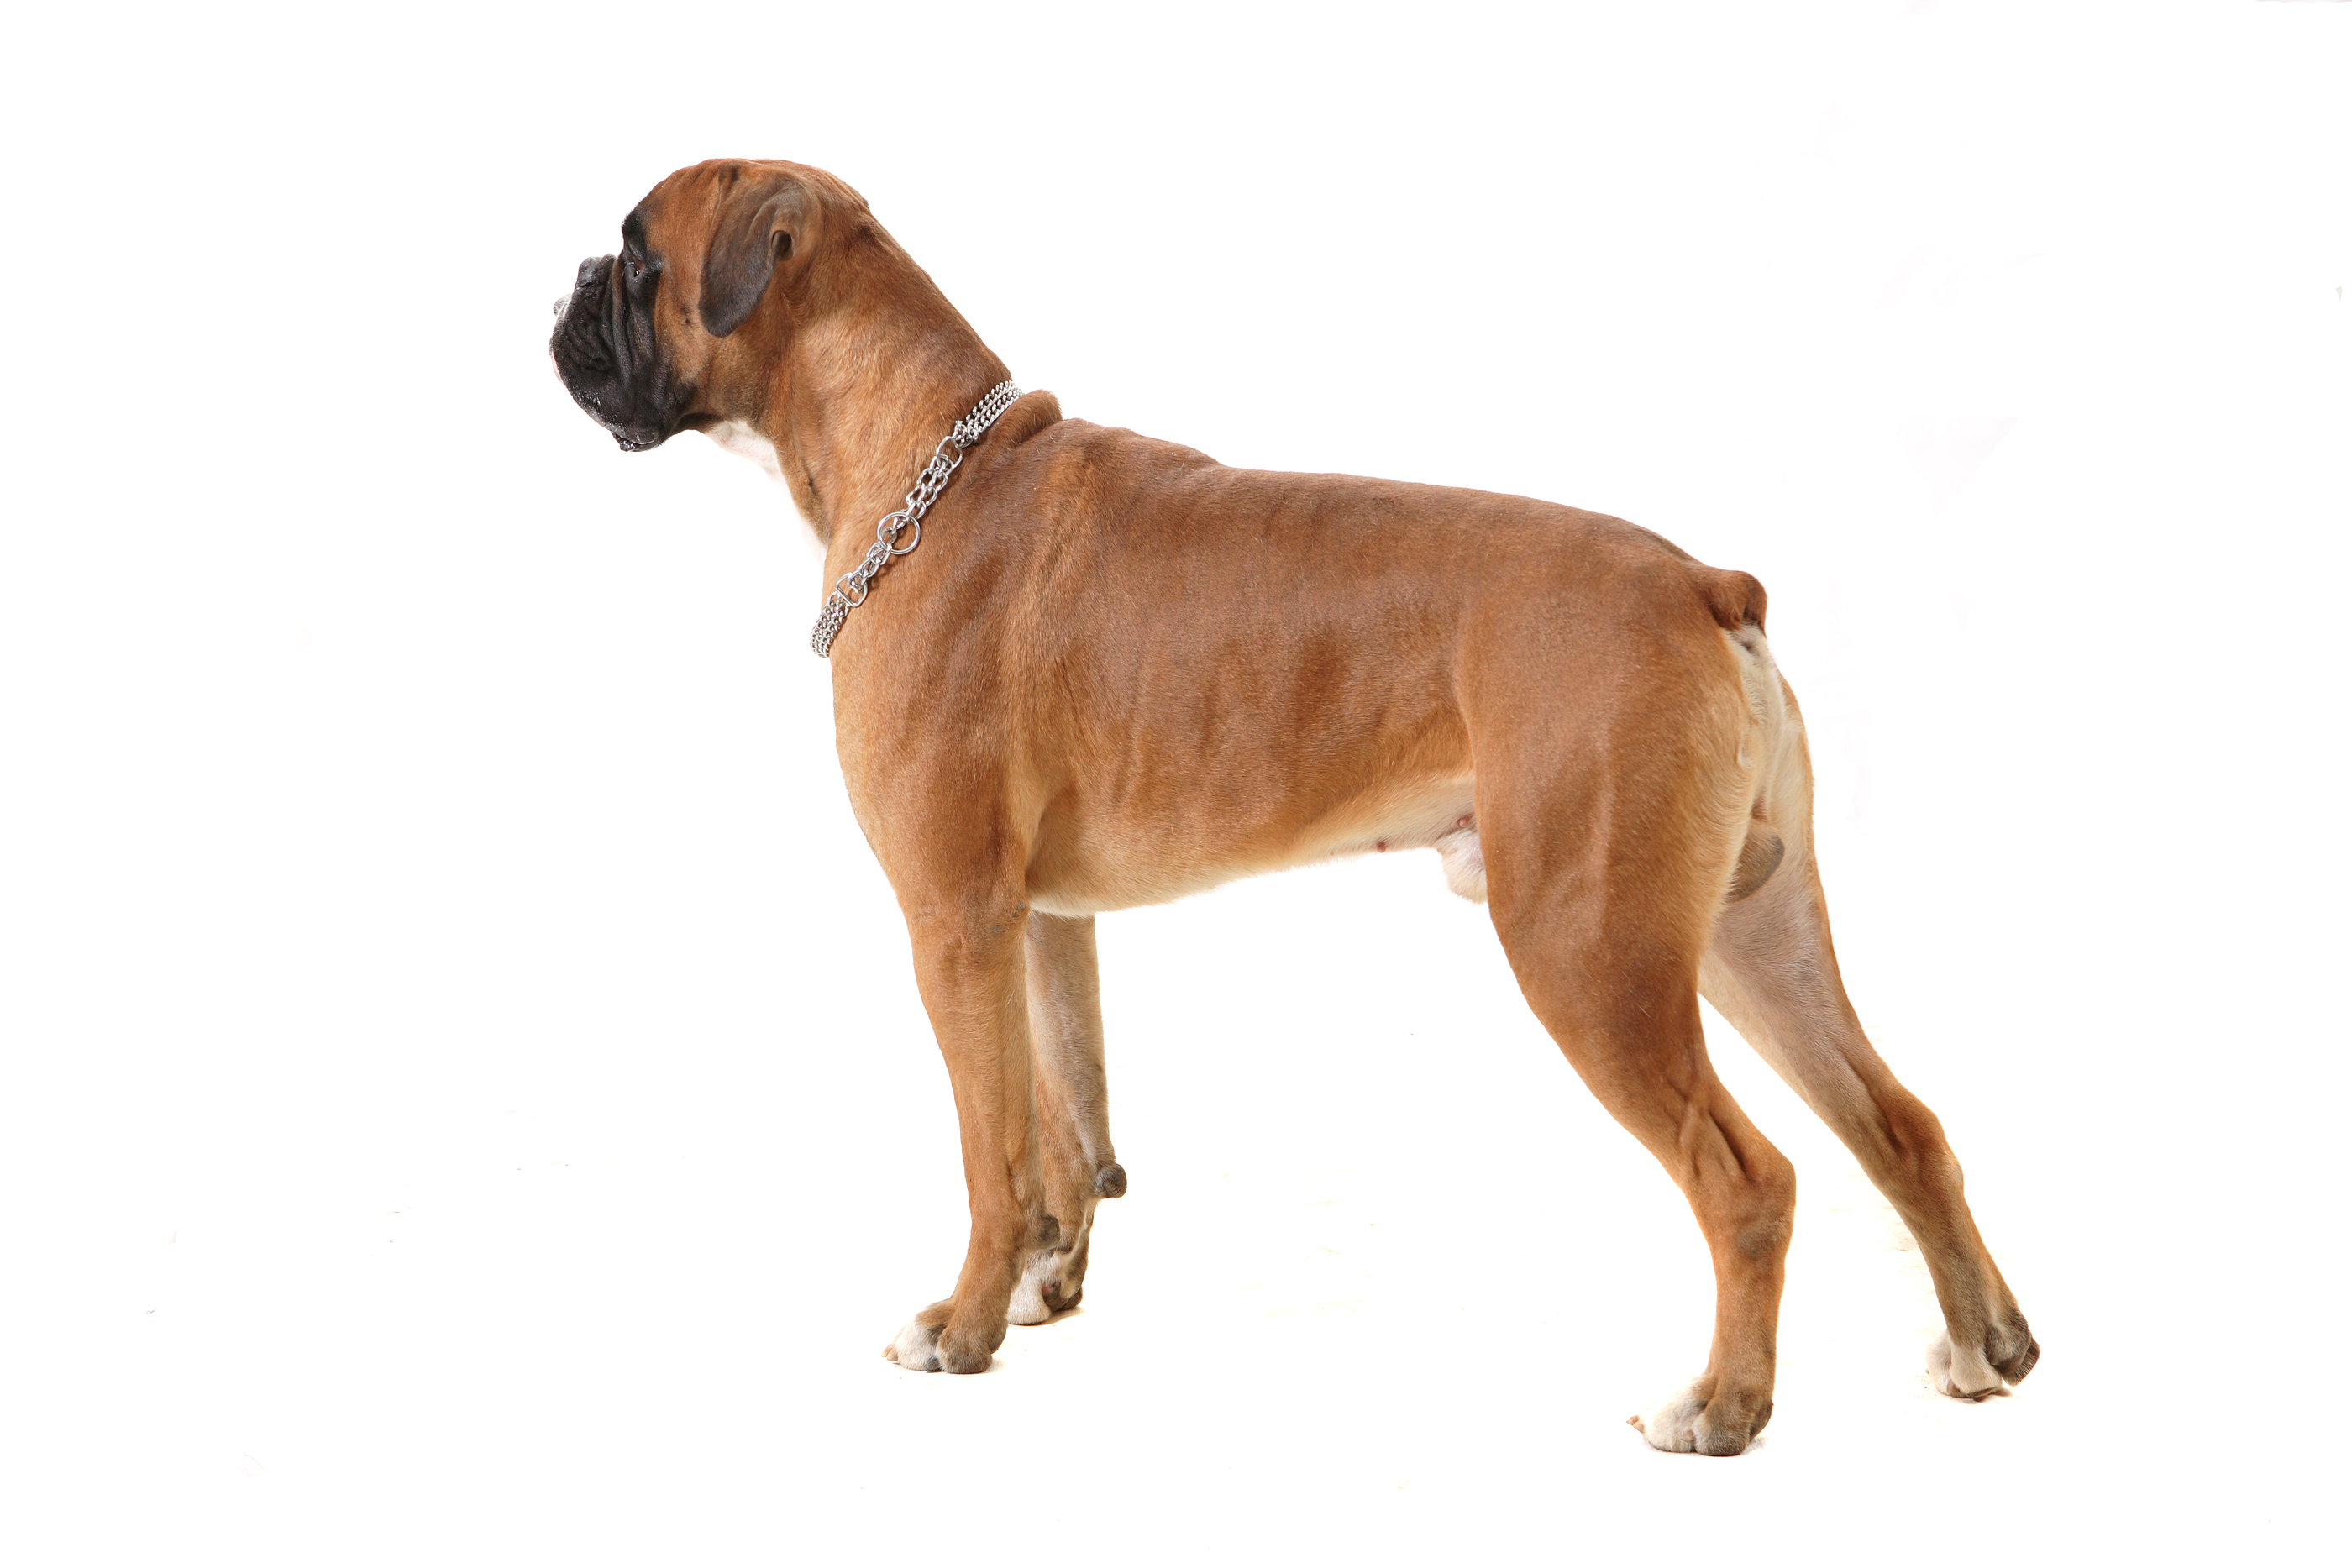 boxer dog photo | Boxer Dog Wallpapper HD Download | Wallpicshd - PNG HD Images Of Dogs